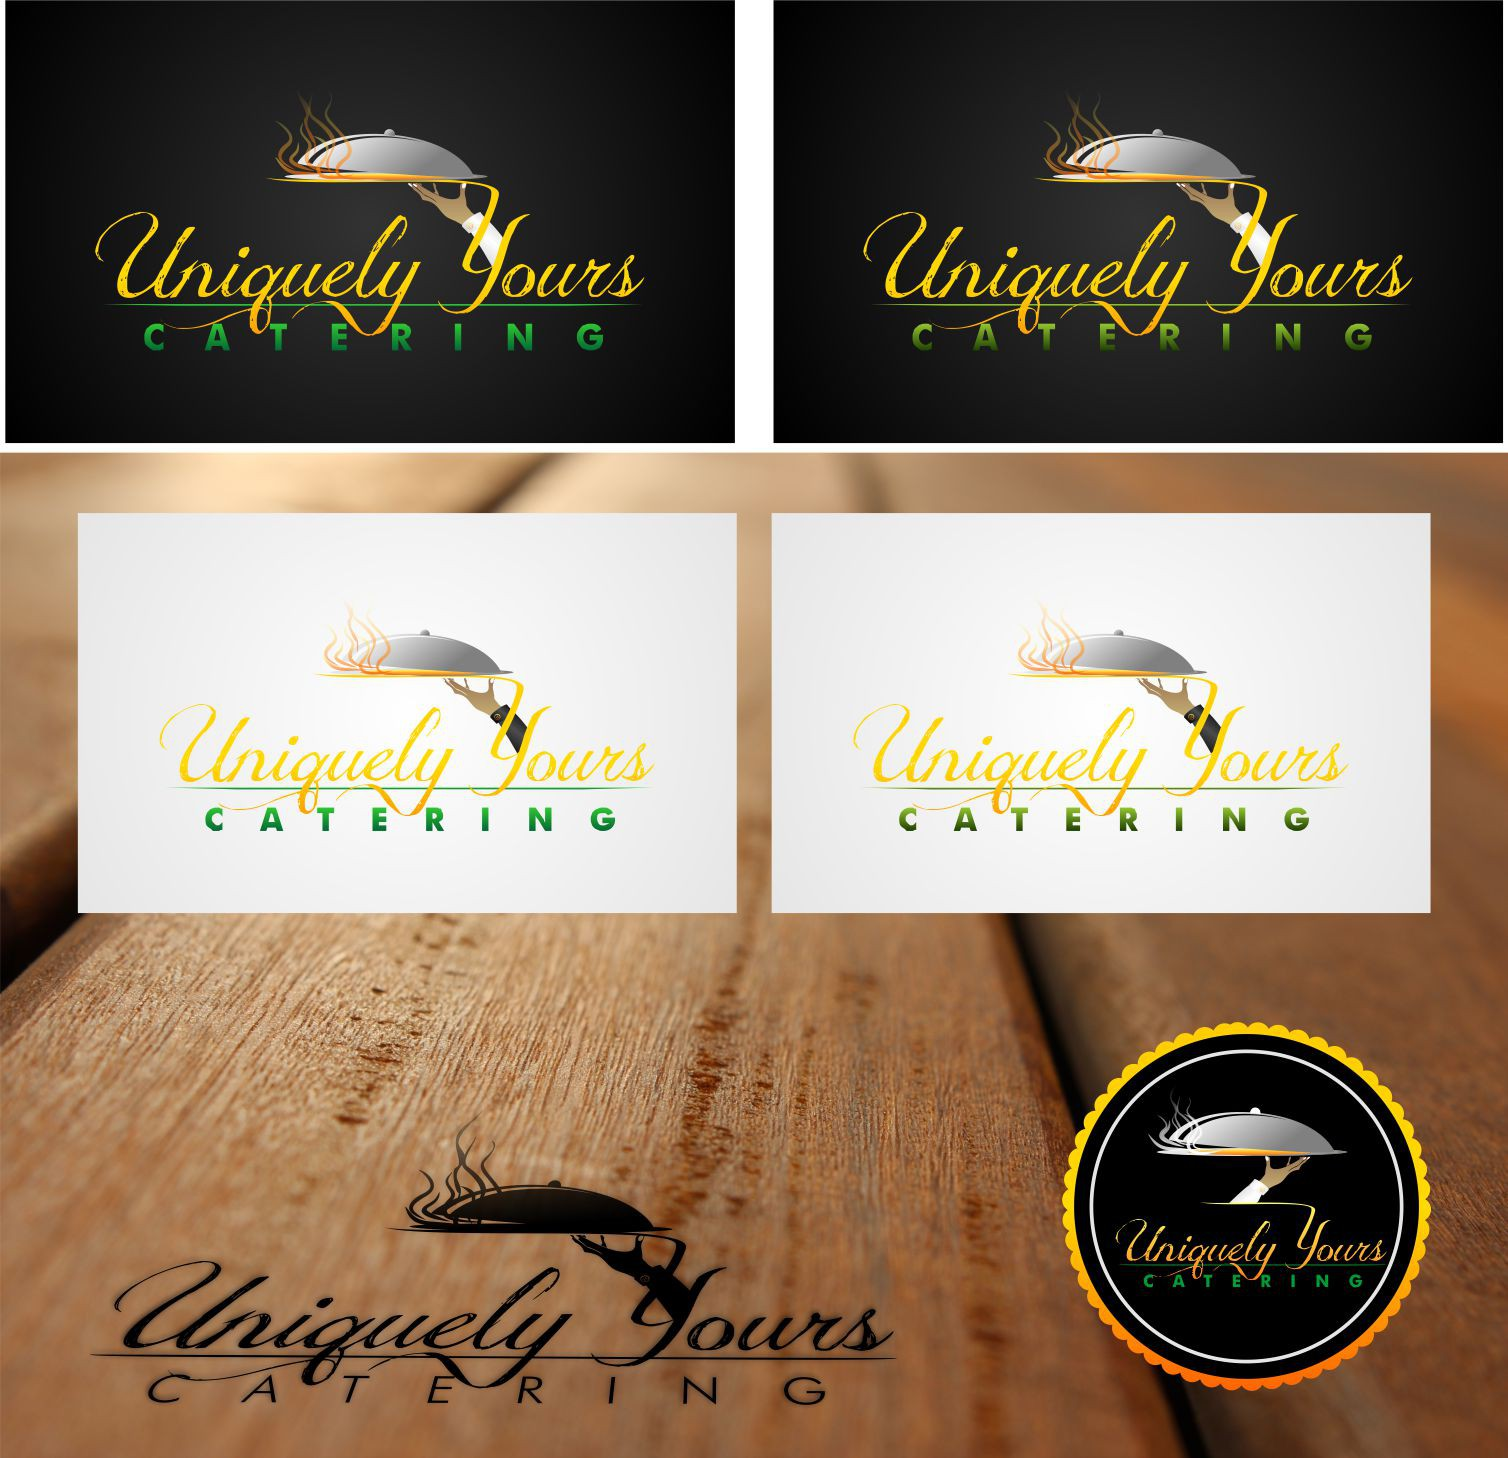 Uniquely Yours Catering needs a new logo